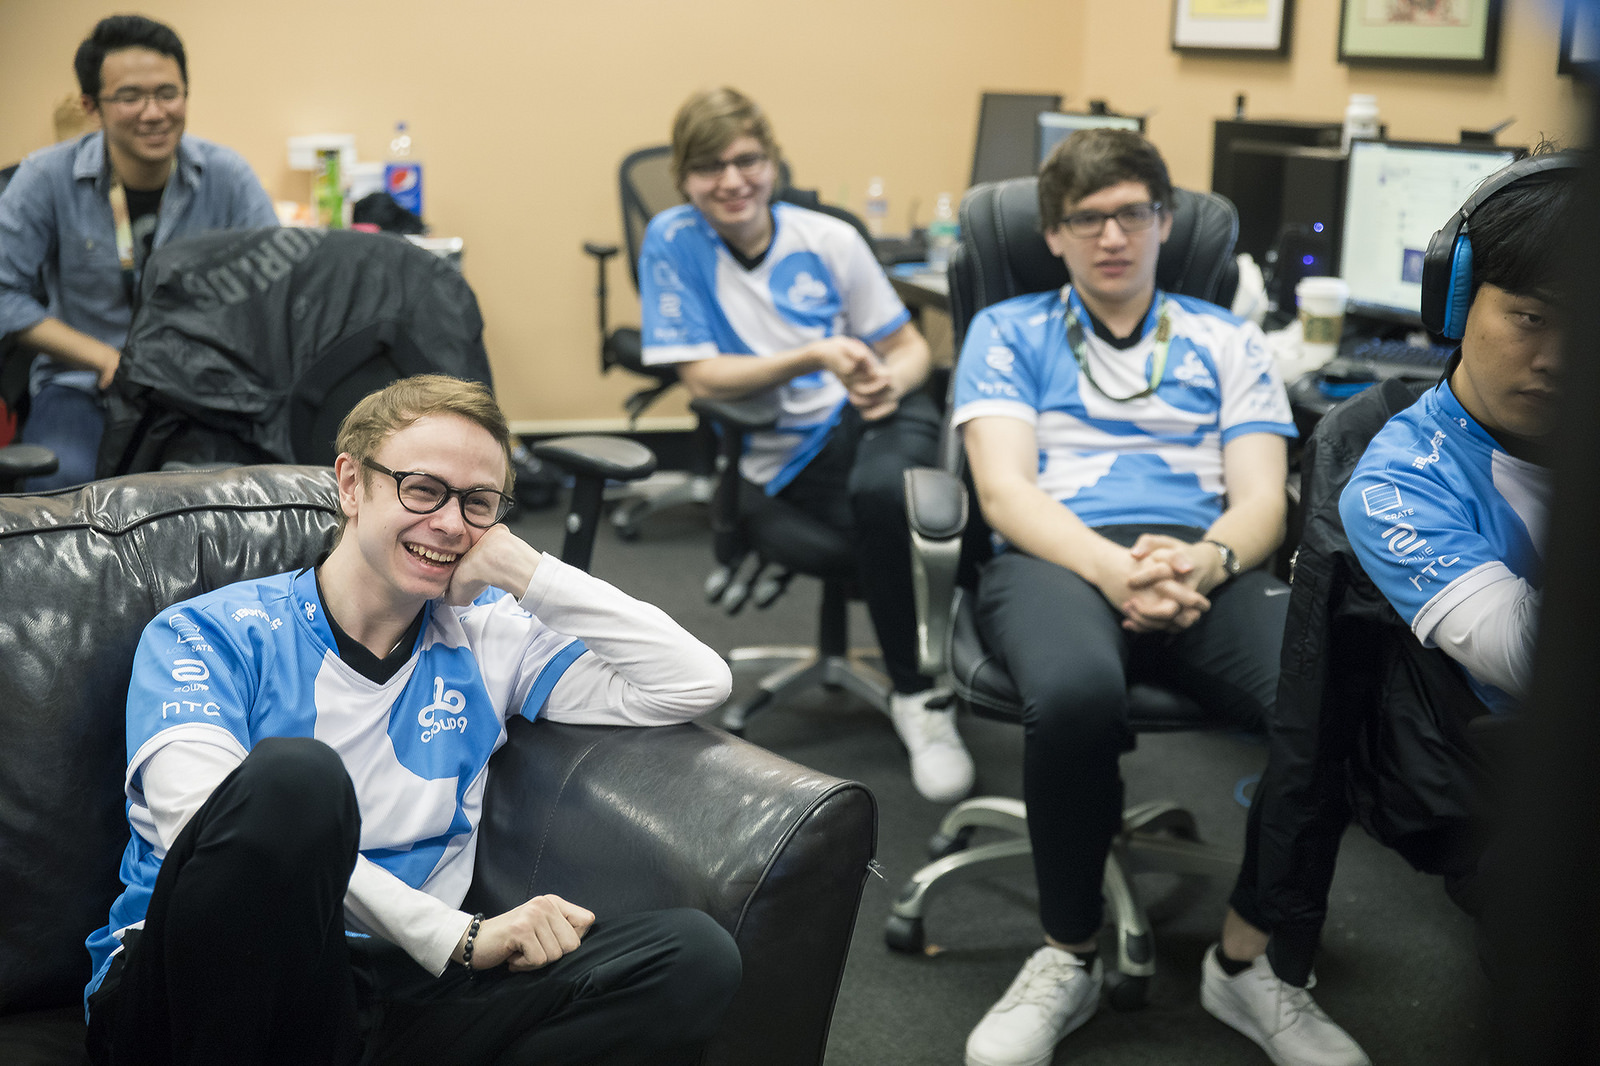 Jensen relaxes as C9 qualify for Worlds quarterfinals despite a mixed showing.